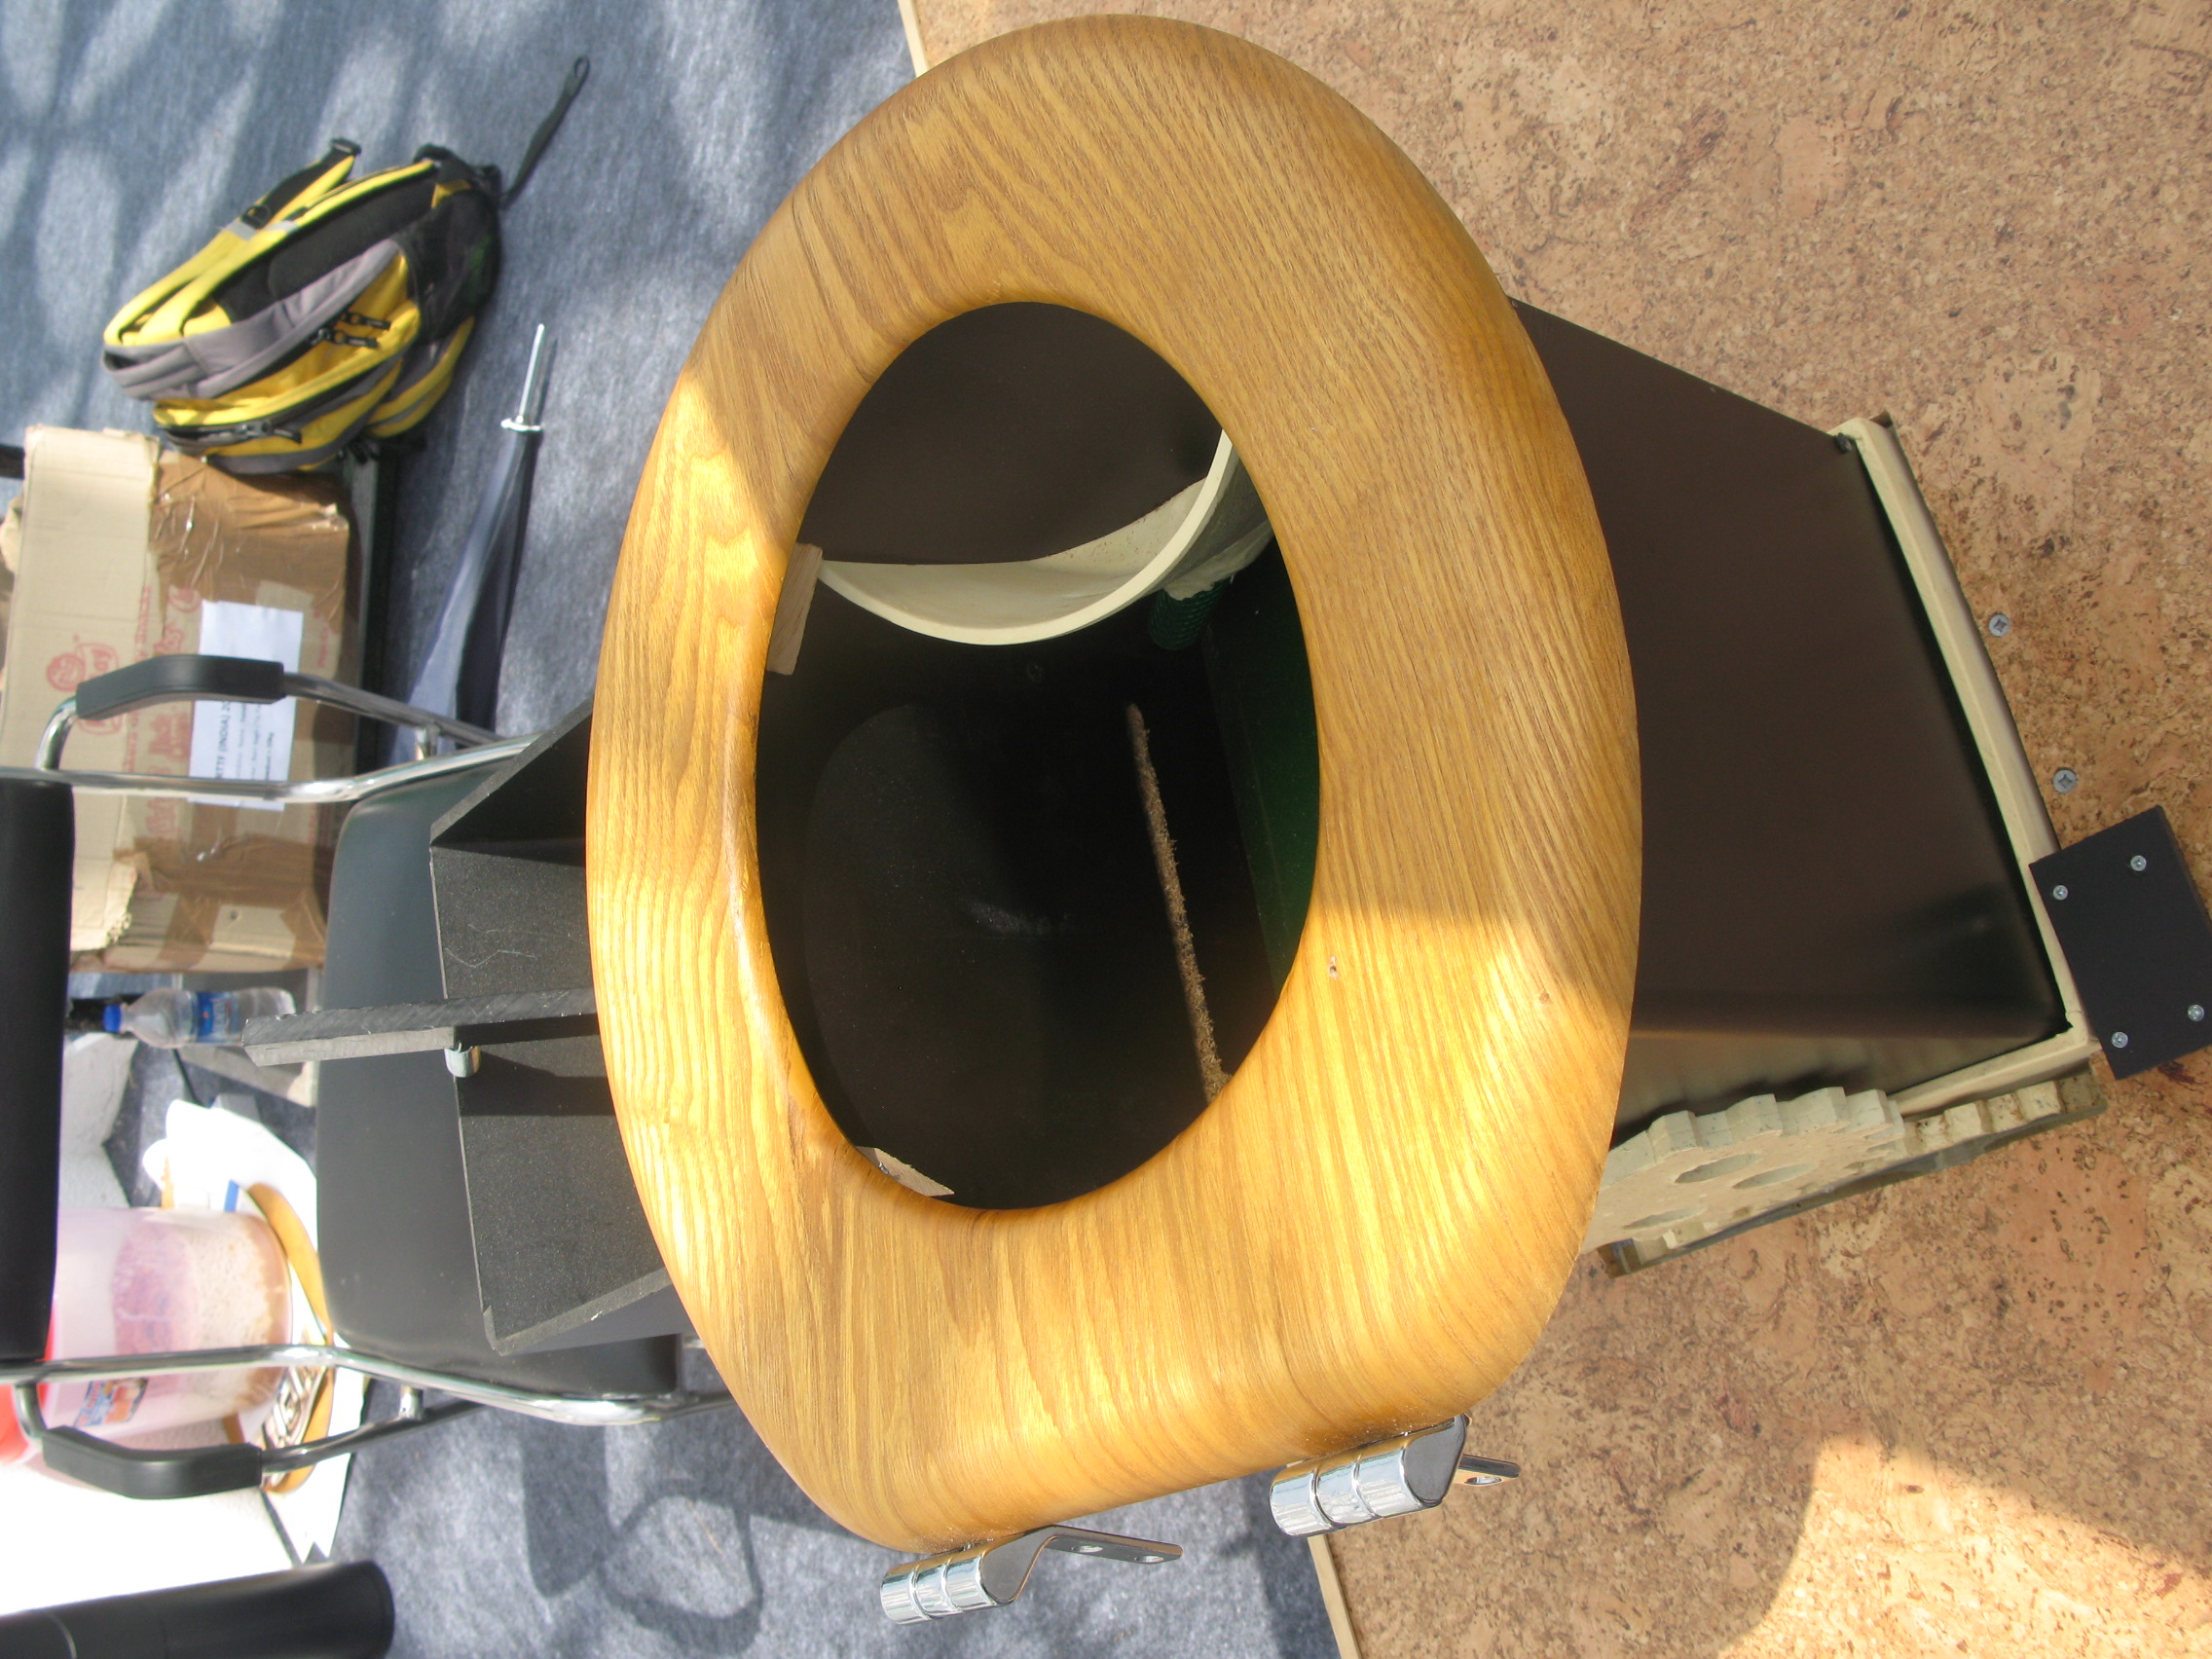 Astonishing File Urine Diversion Toilet Seat With Black Saw Dust Pdpeps Interior Chair Design Pdpepsorg